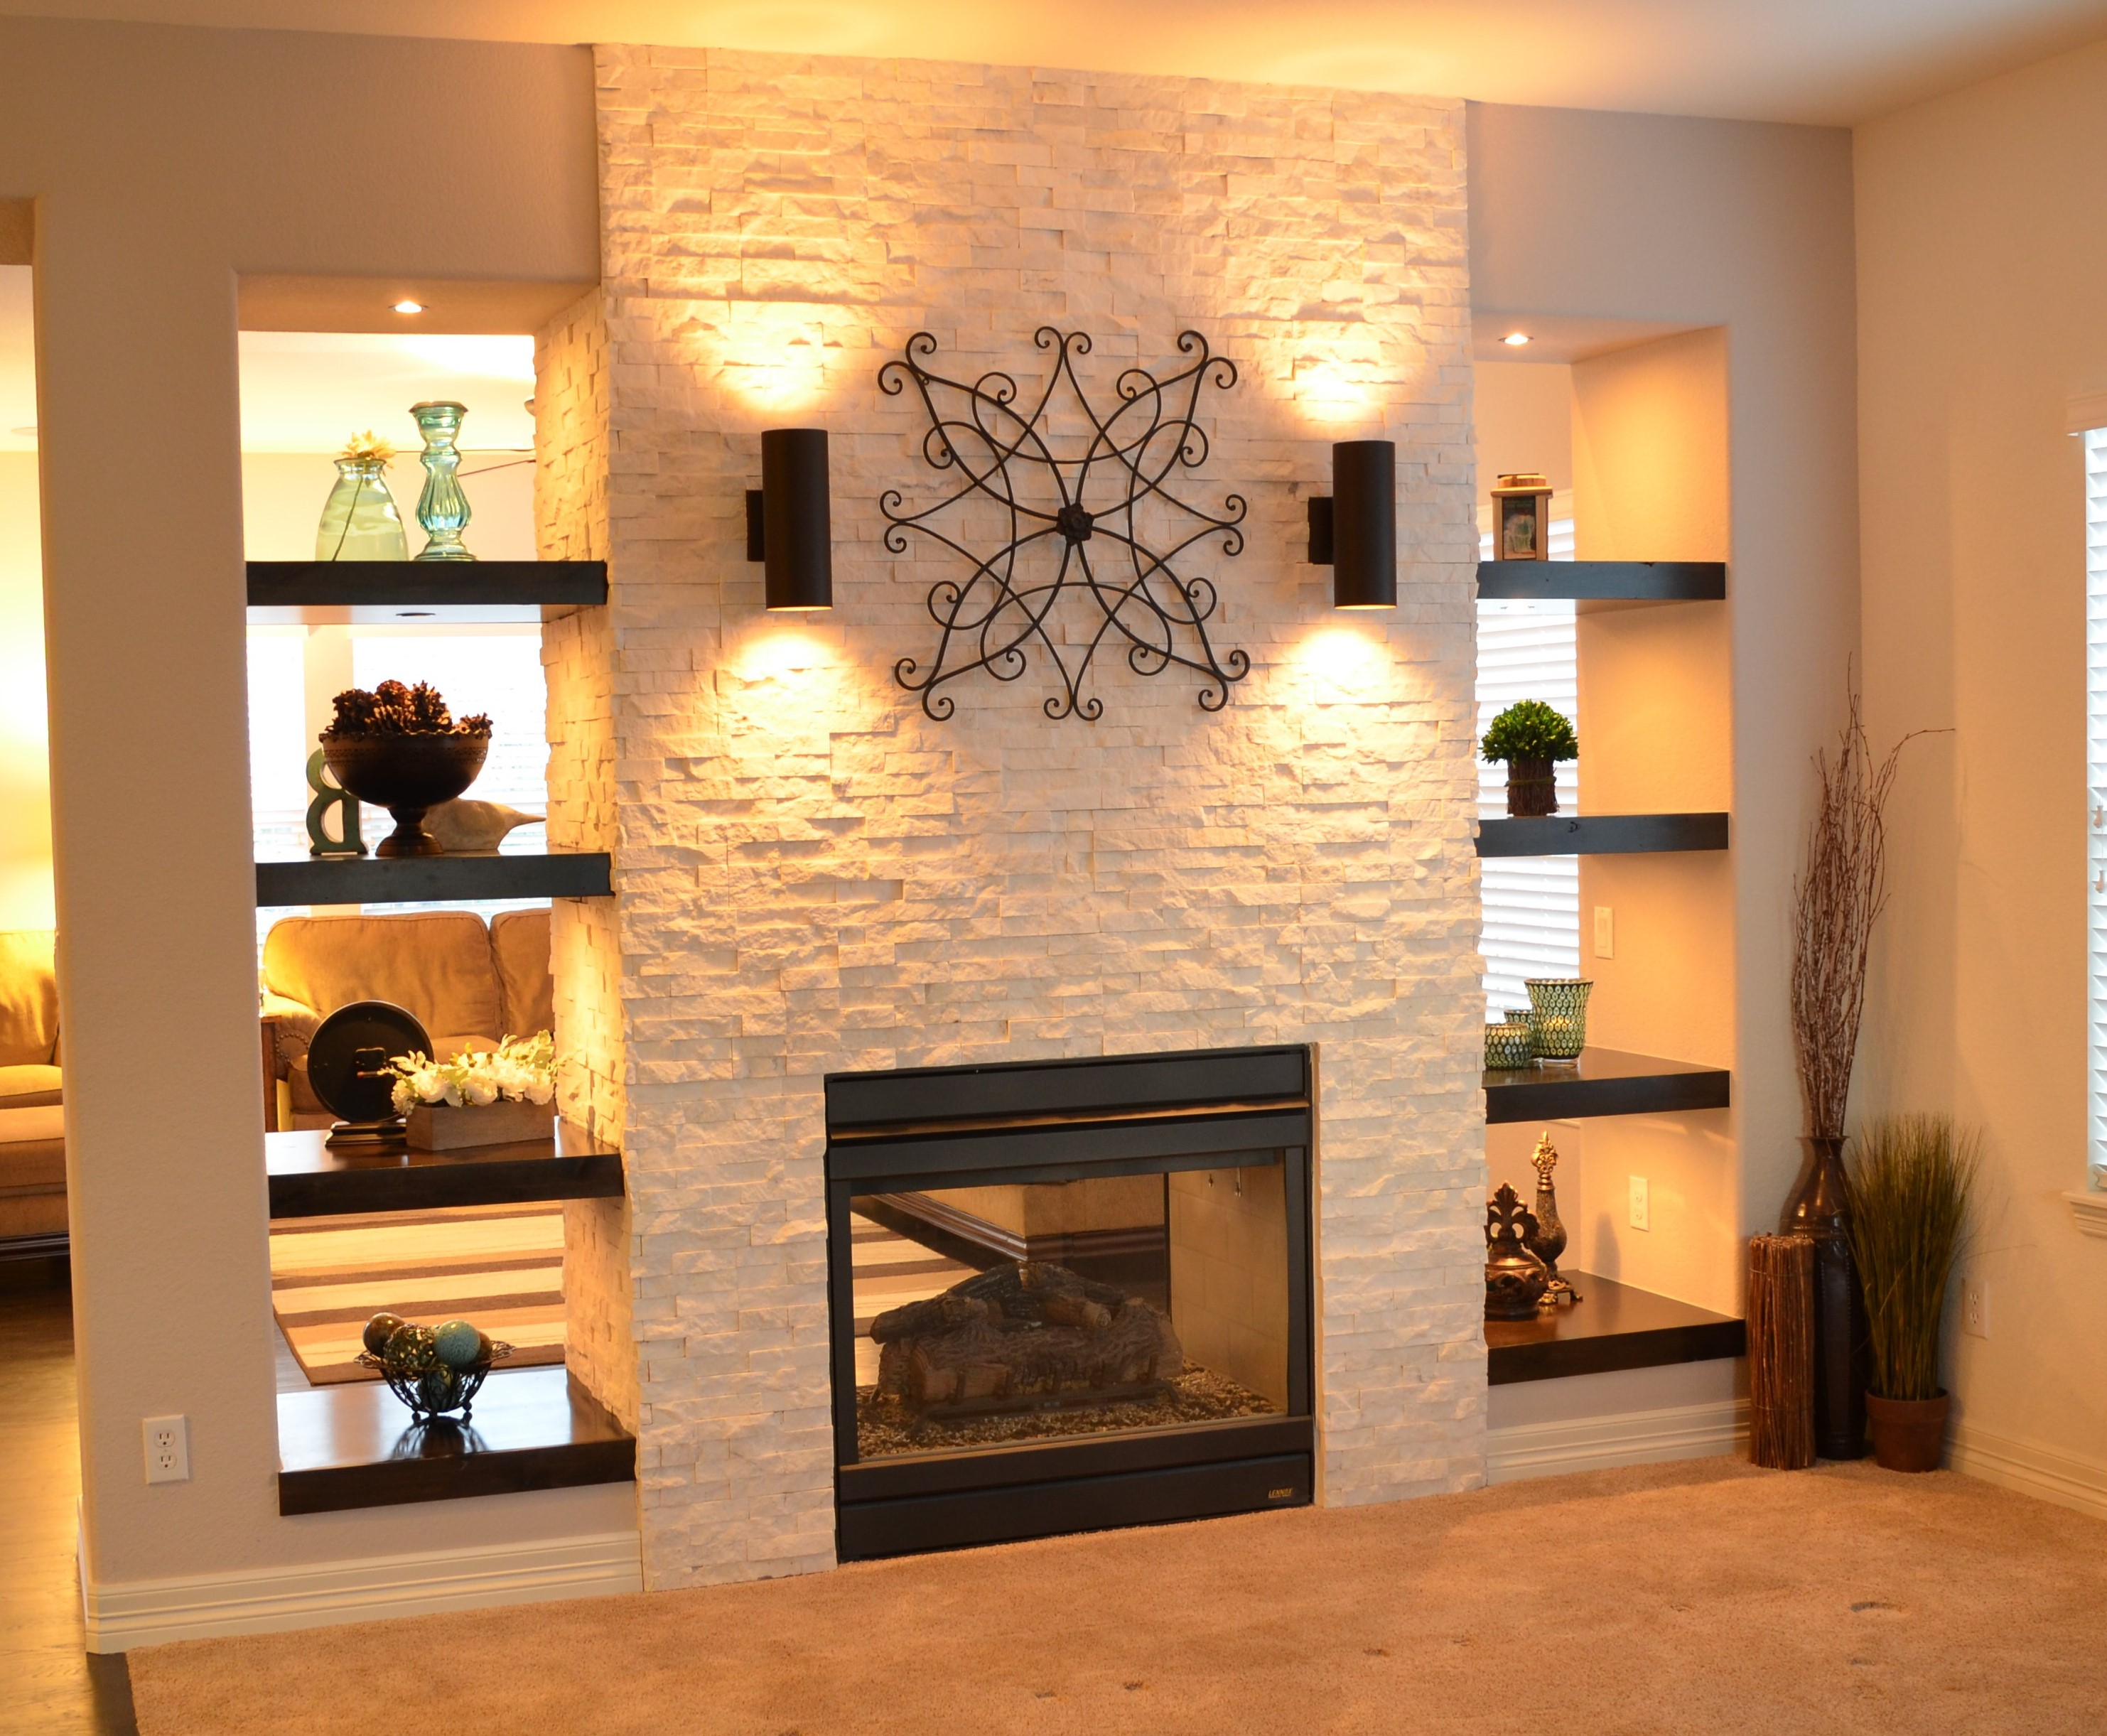 Basement Remodeling Ideas Fireplaces And Other Basement